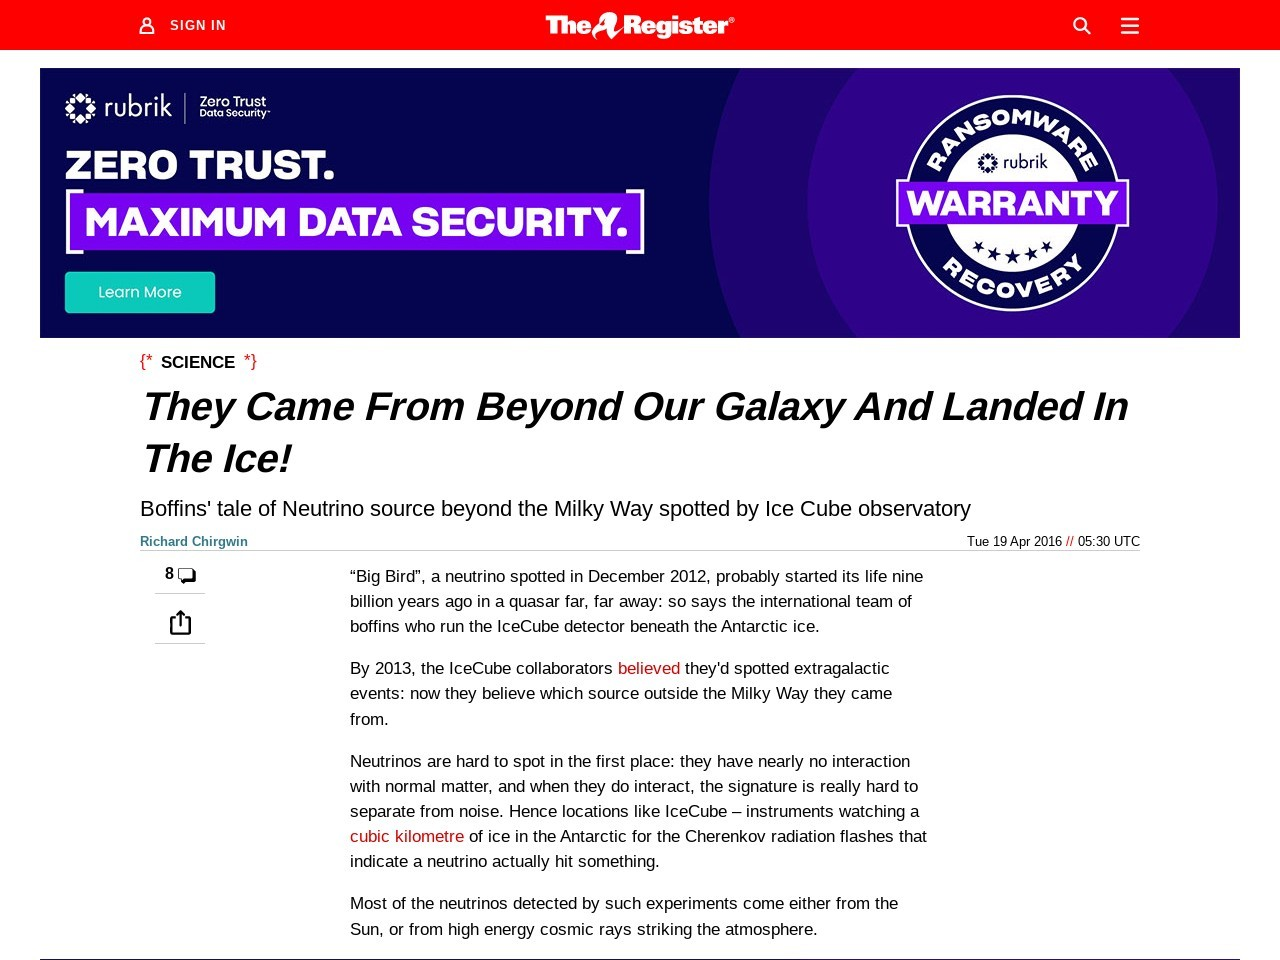 <i>They Came From Beyond Our Galaxy And Landed In The Ice!</i>